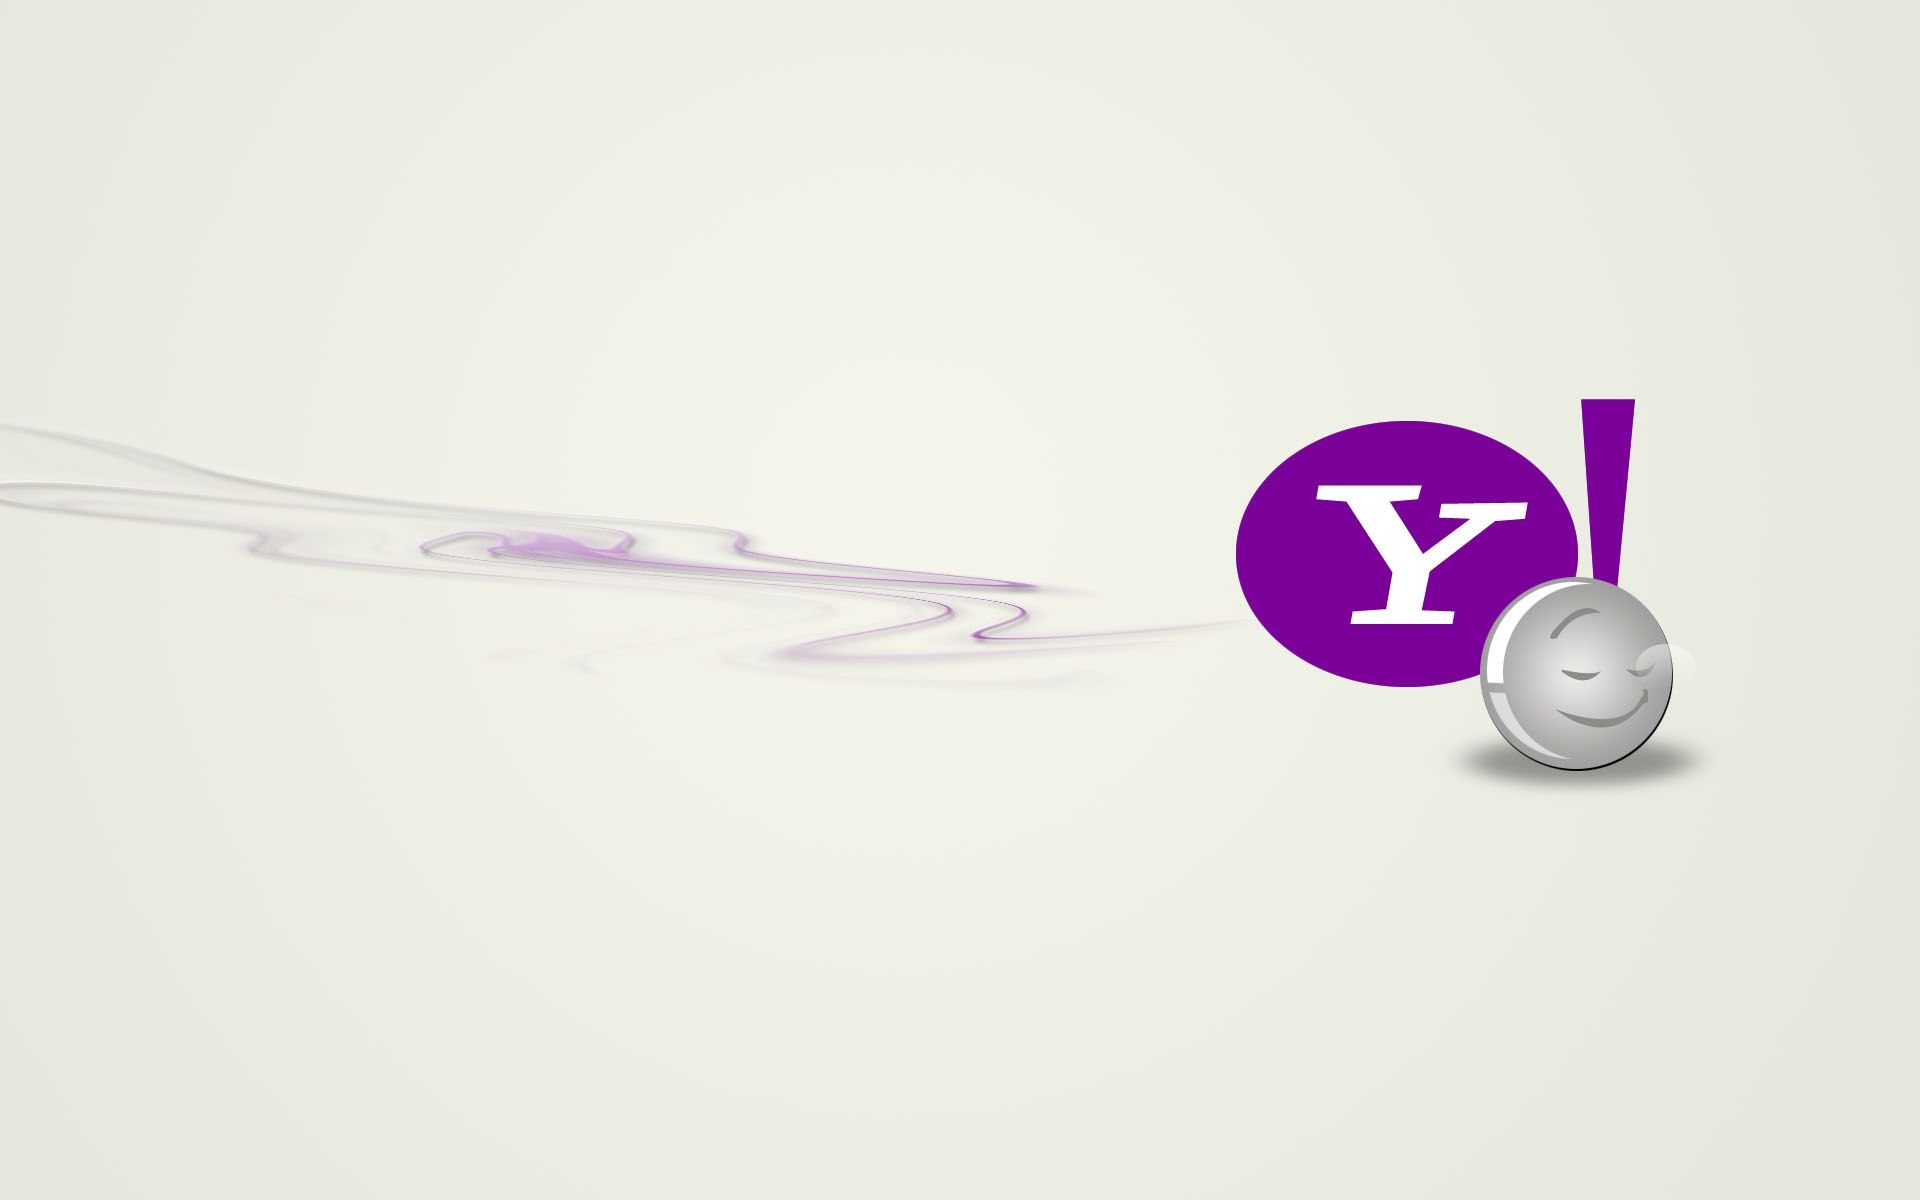 yahoo desktop wallpaper 63933